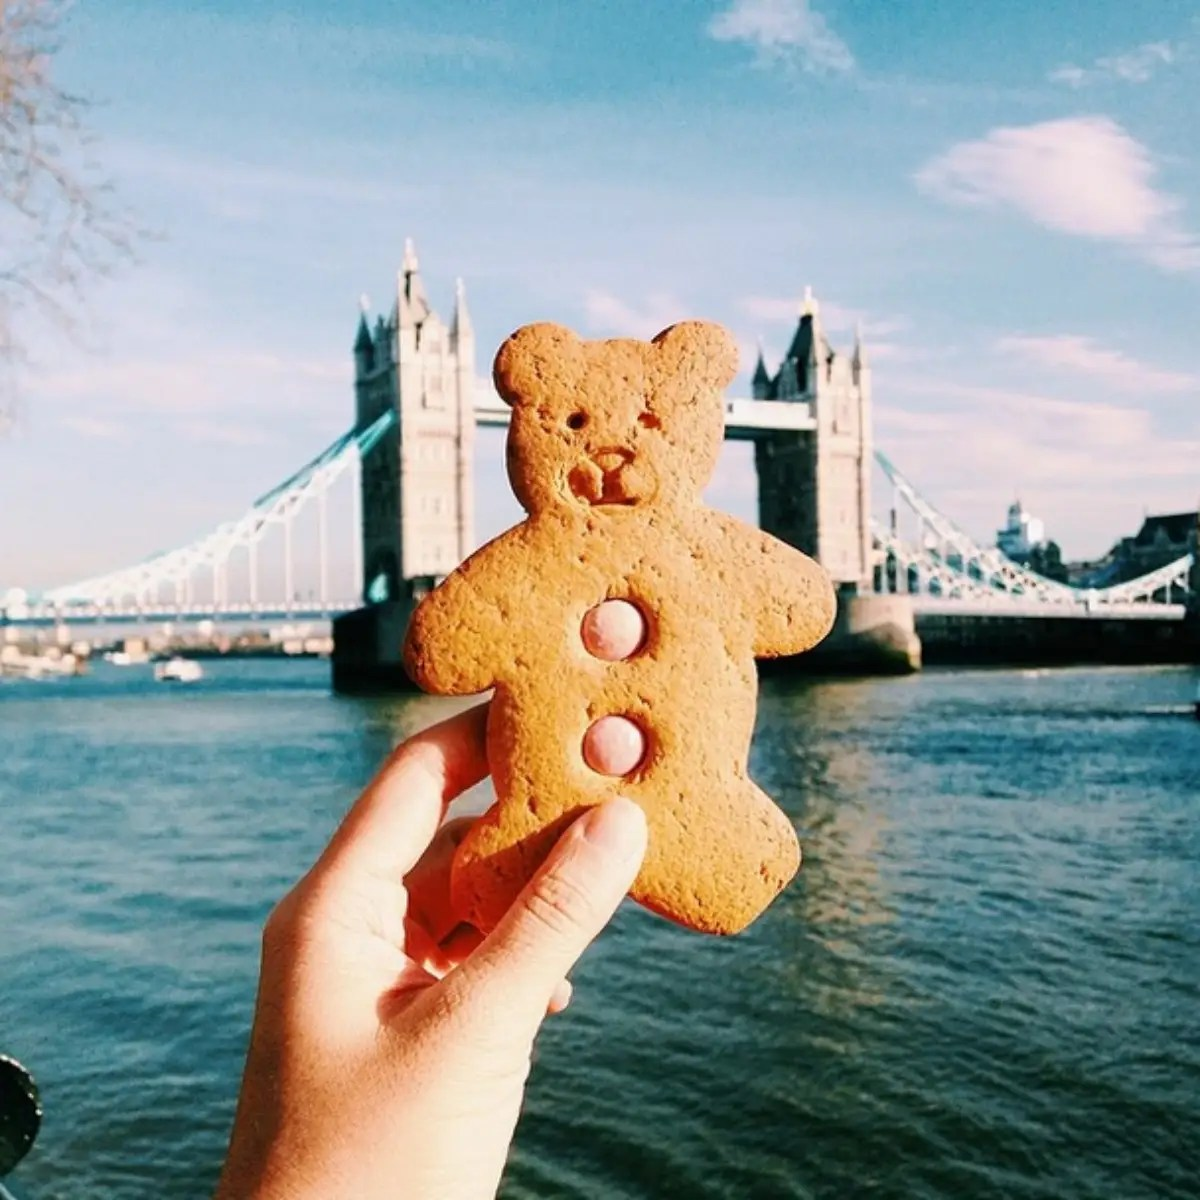 Tower Bridge in London, enjoying a cute teddy bear cookie I got from Borough Market.